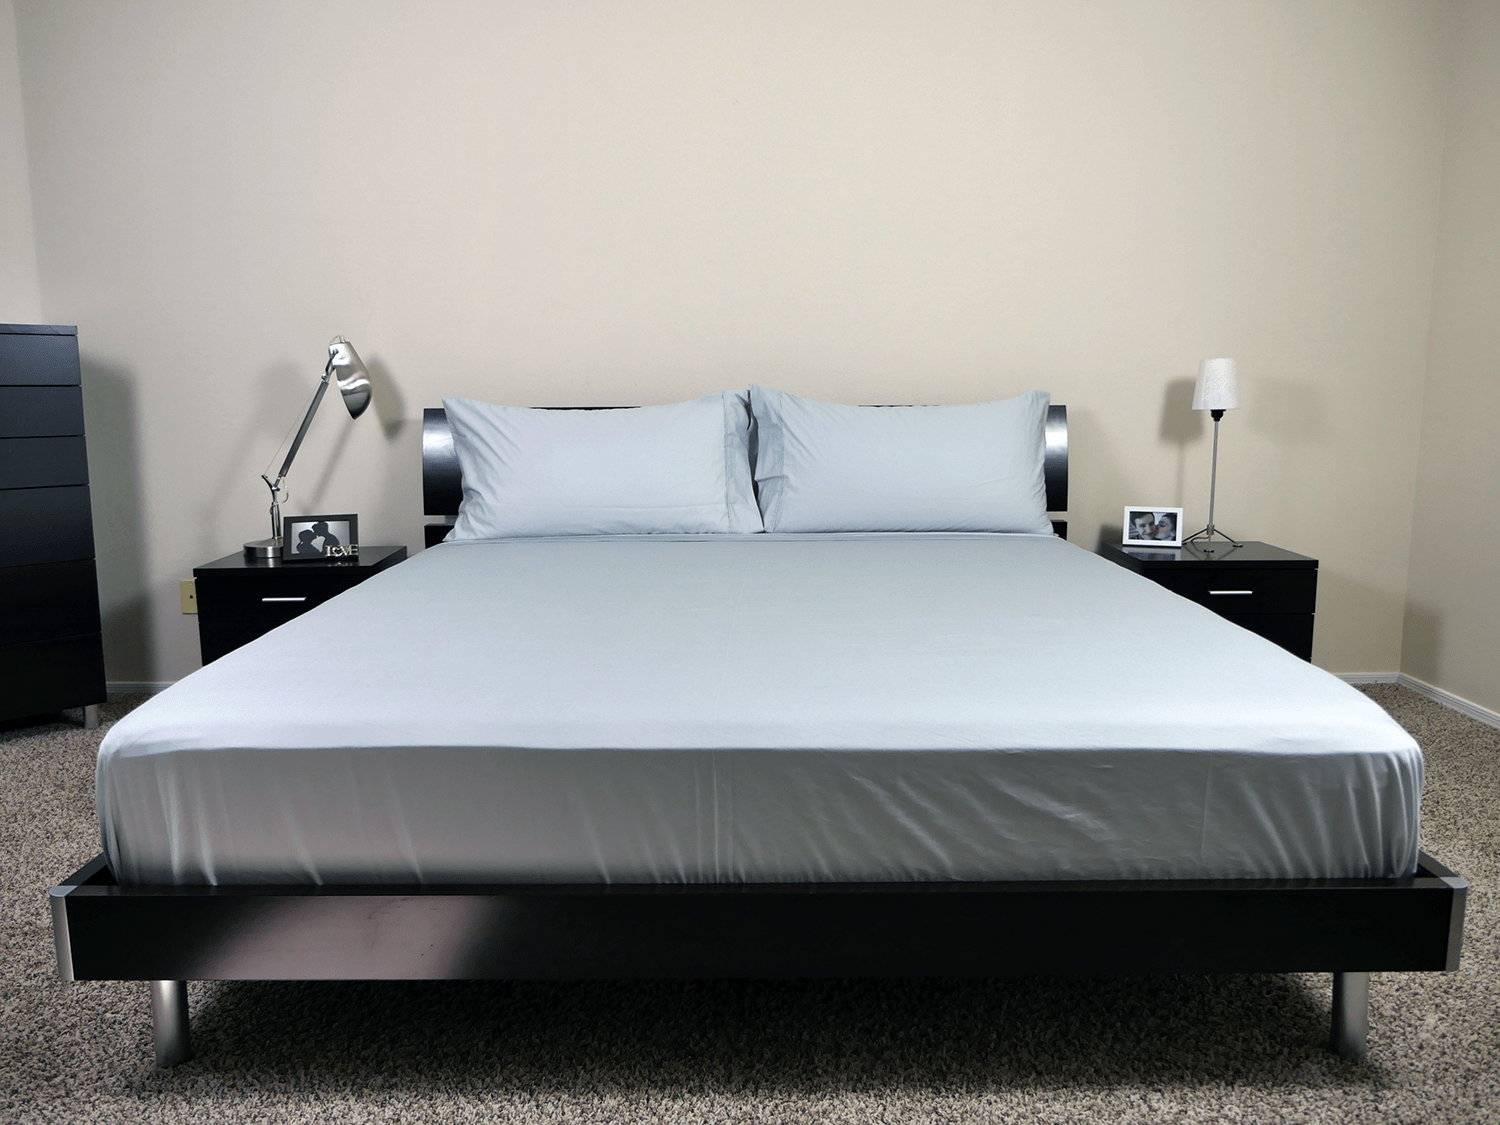 King size set of Woven cotton sheets by Malouf